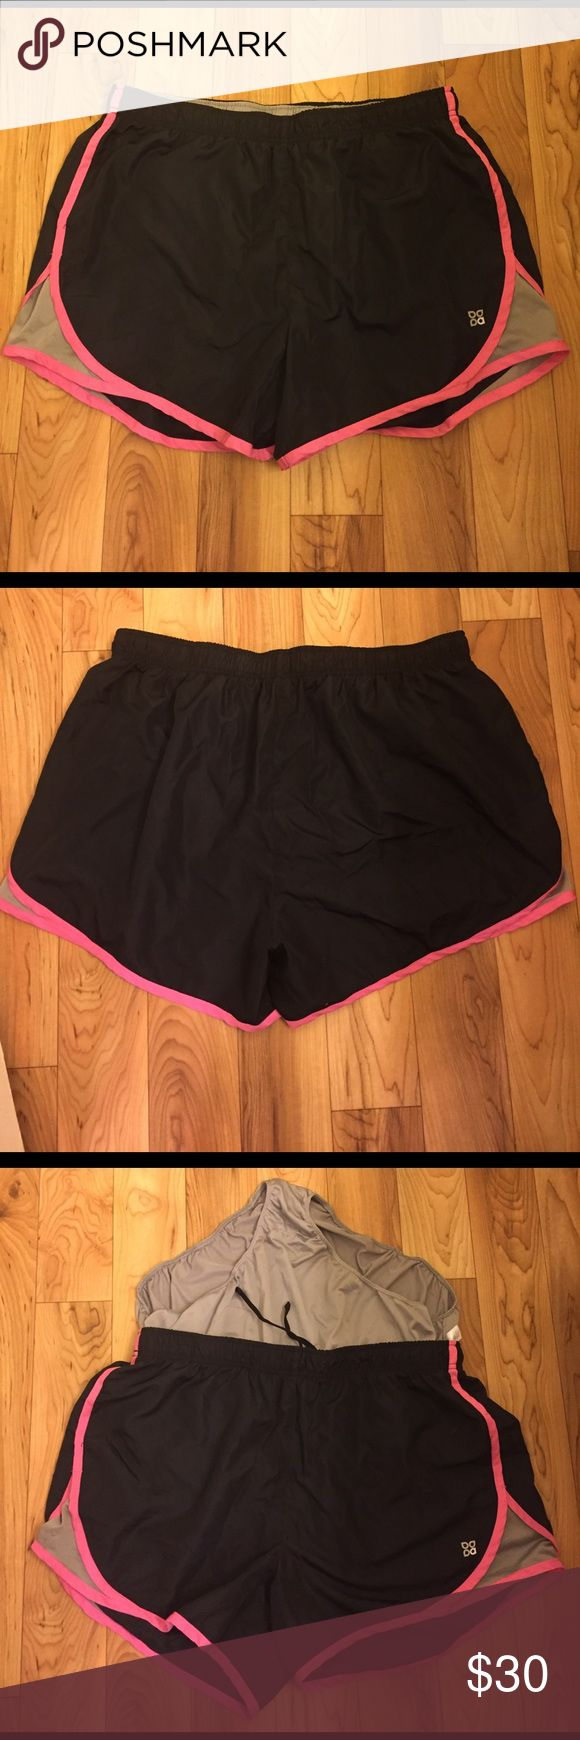 Workout shorts Black polyester workout shorts, with a pink accent.  Built-in mesh liner, and mesh sides for ventilation. Small pocket on the inside for keys. From Lady's Footlocker. Shorts